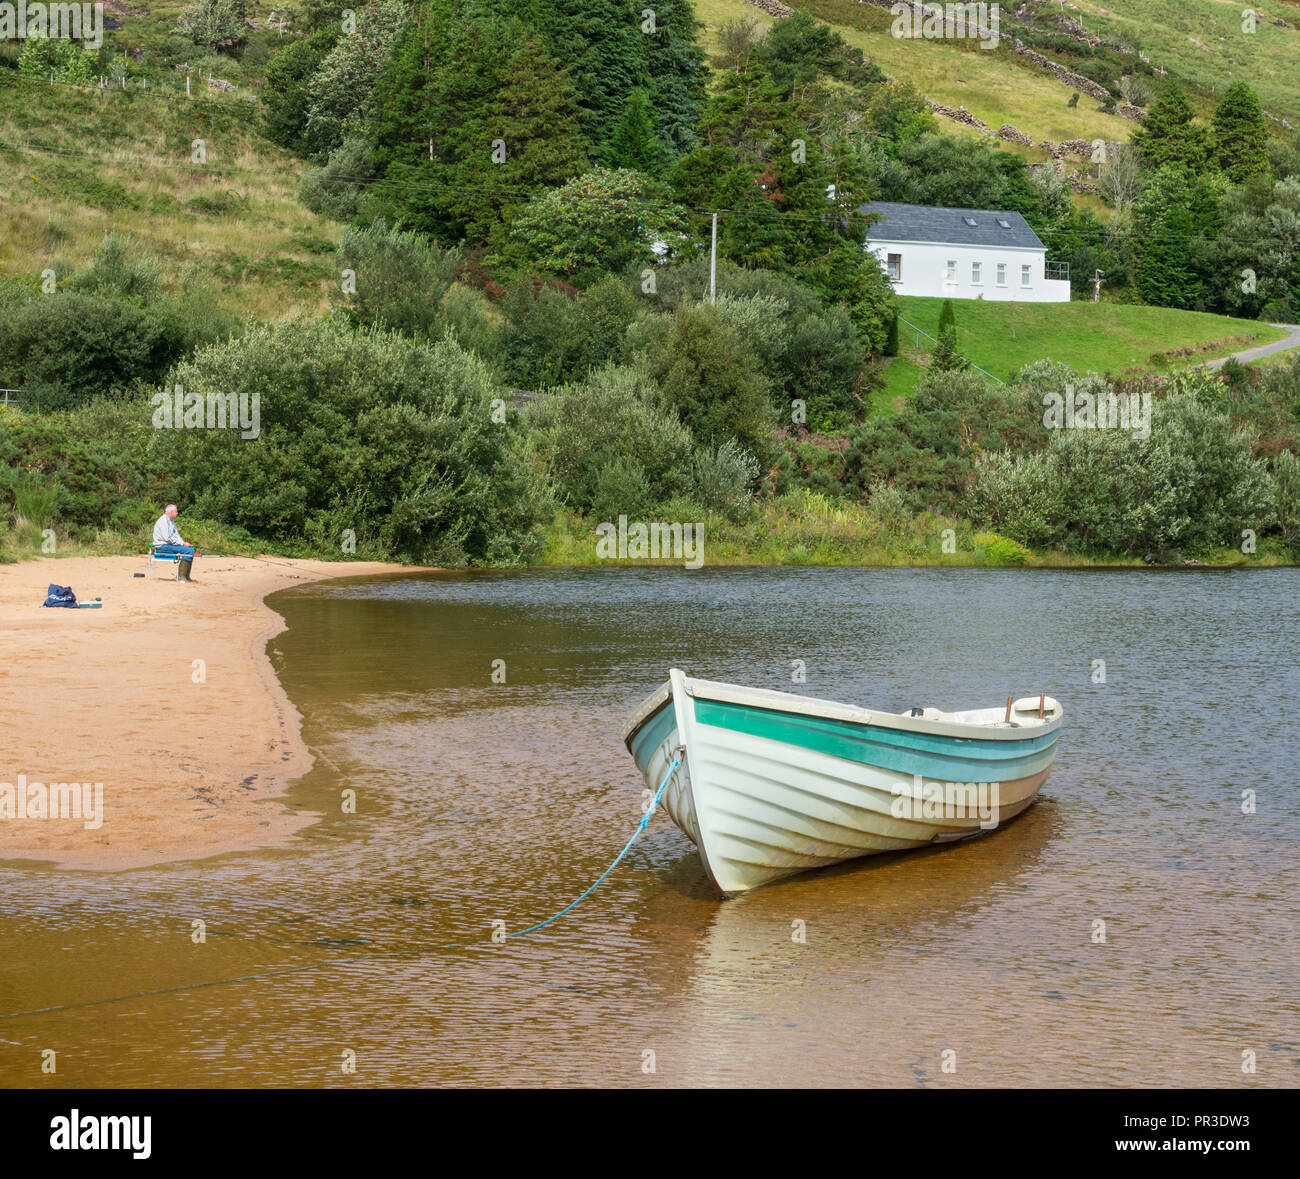 A lone fisherman and a boat on the beach at Lough Nafooey in the Connemara region of County Galway in Ireland. Stock Photo